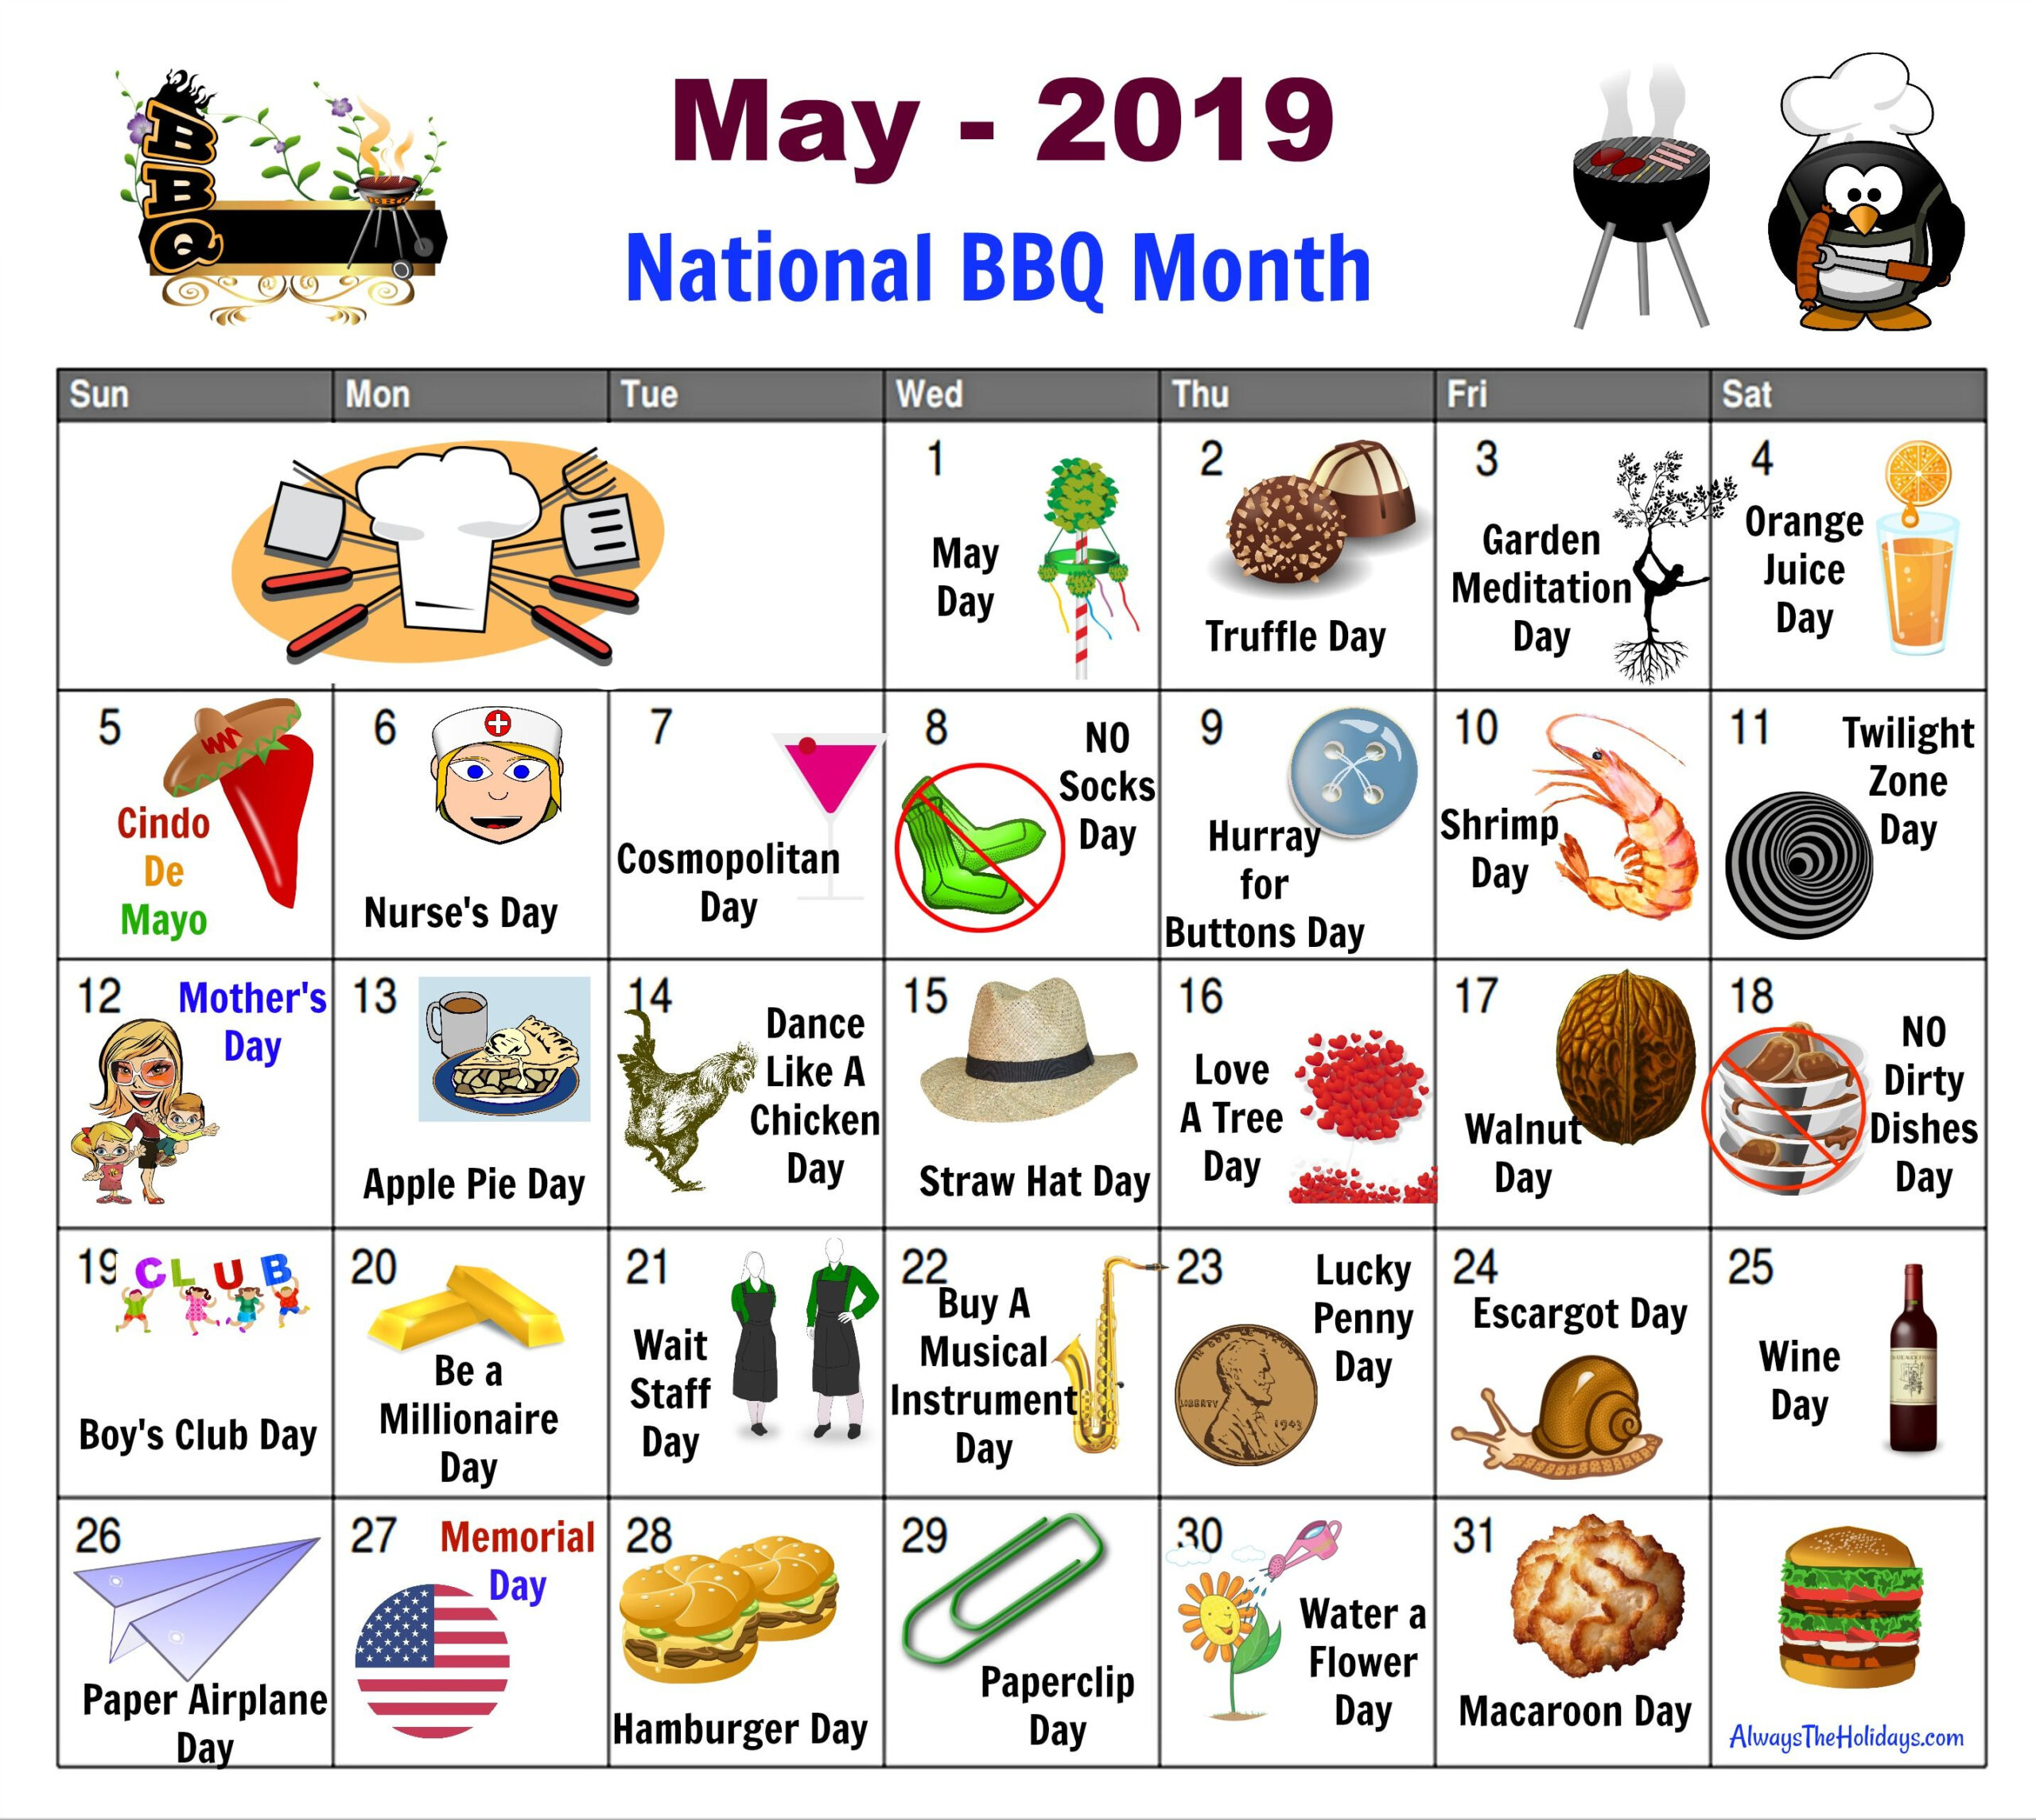 May National Days Calendar - Free Printable. Find Out All